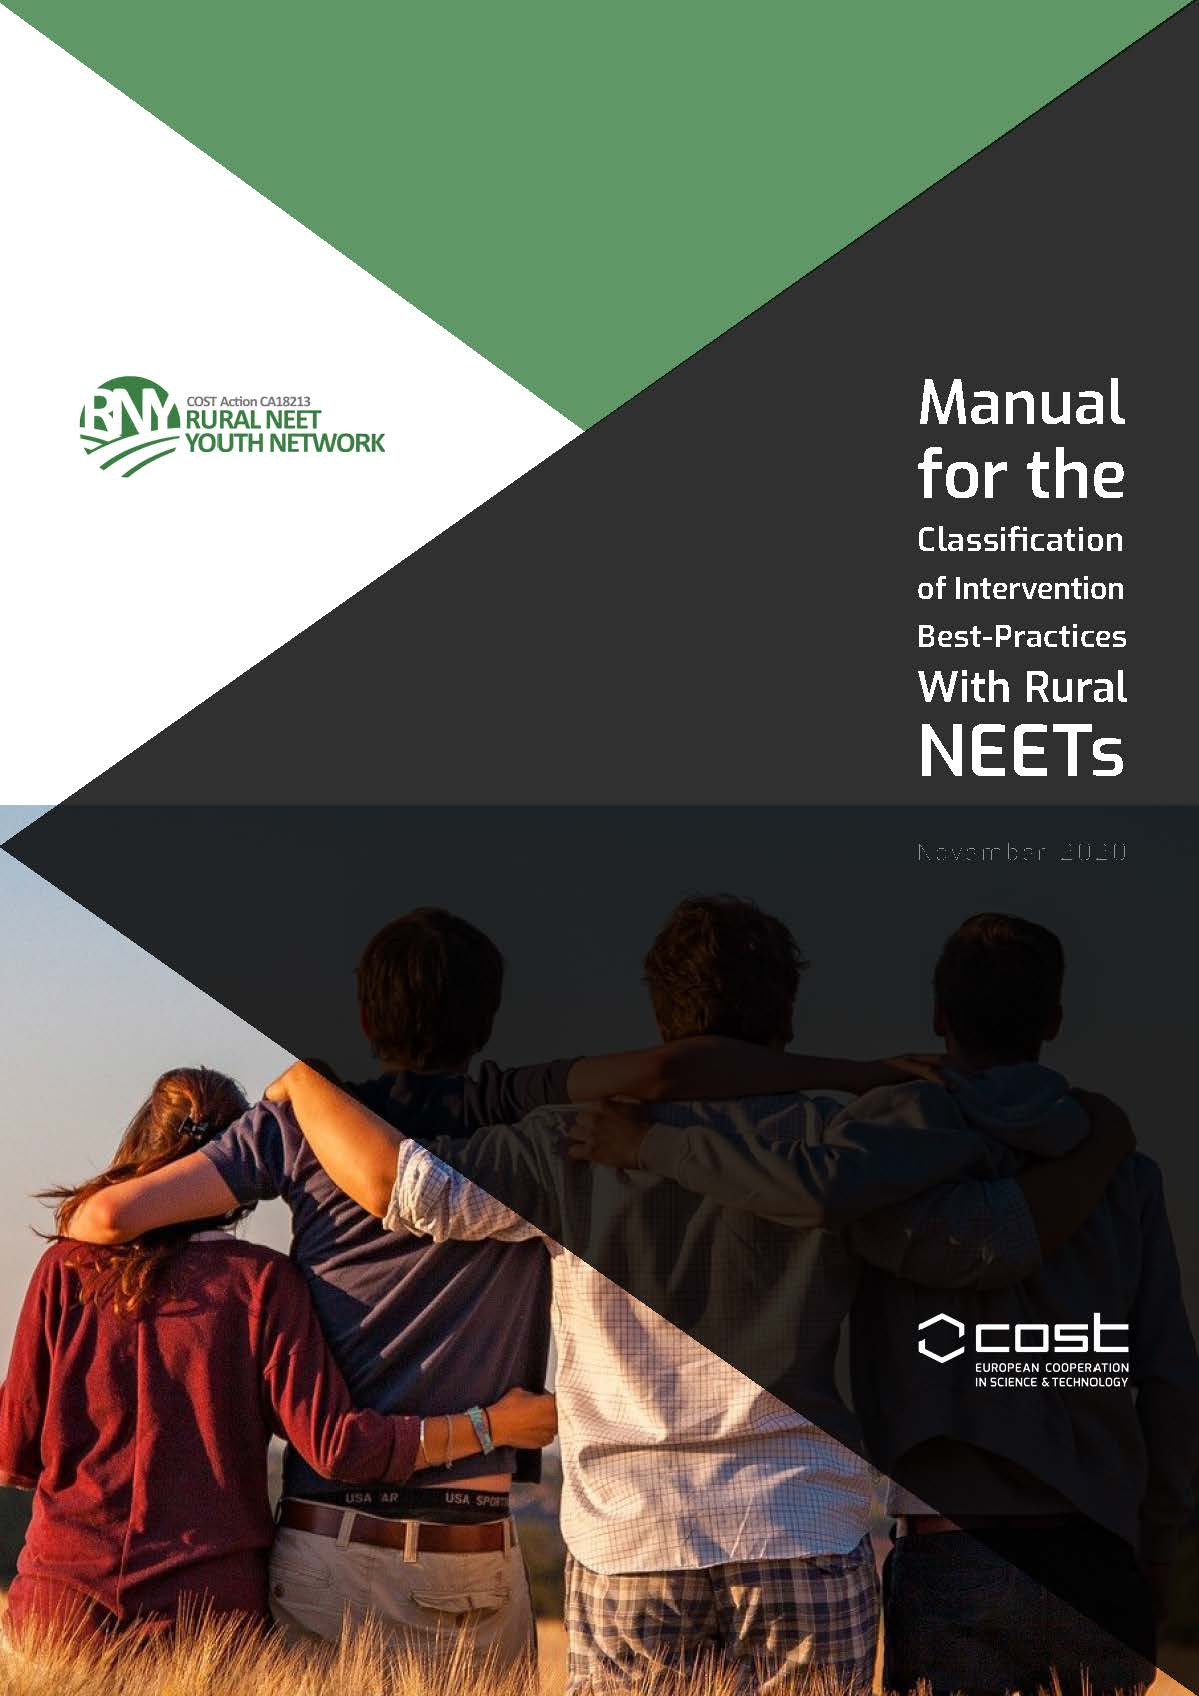 Manual for the Classification of Intervention Best-Practices With Rural NEETs